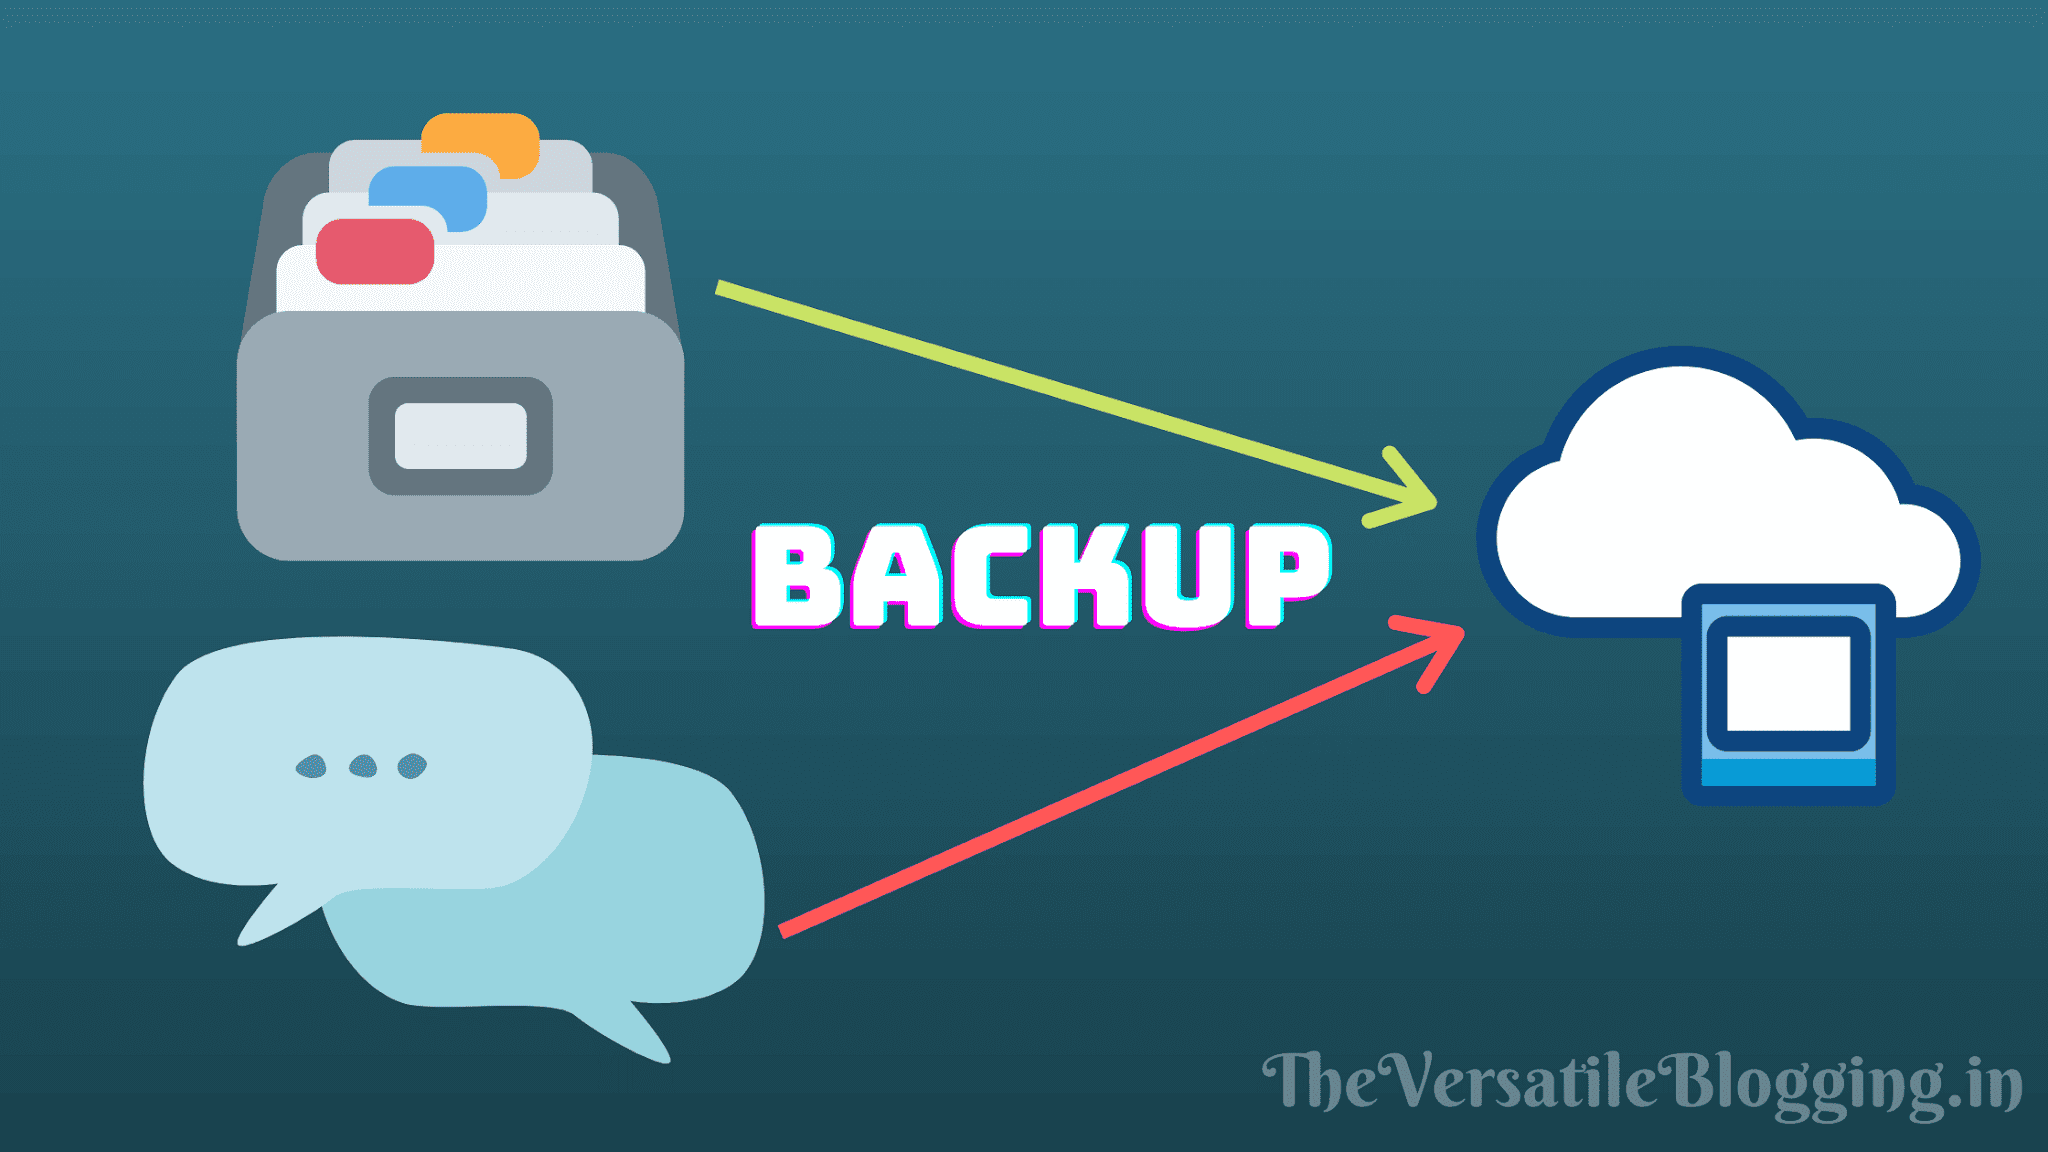 Backup Your Phone Data Online | TheVersatileBlogging.in